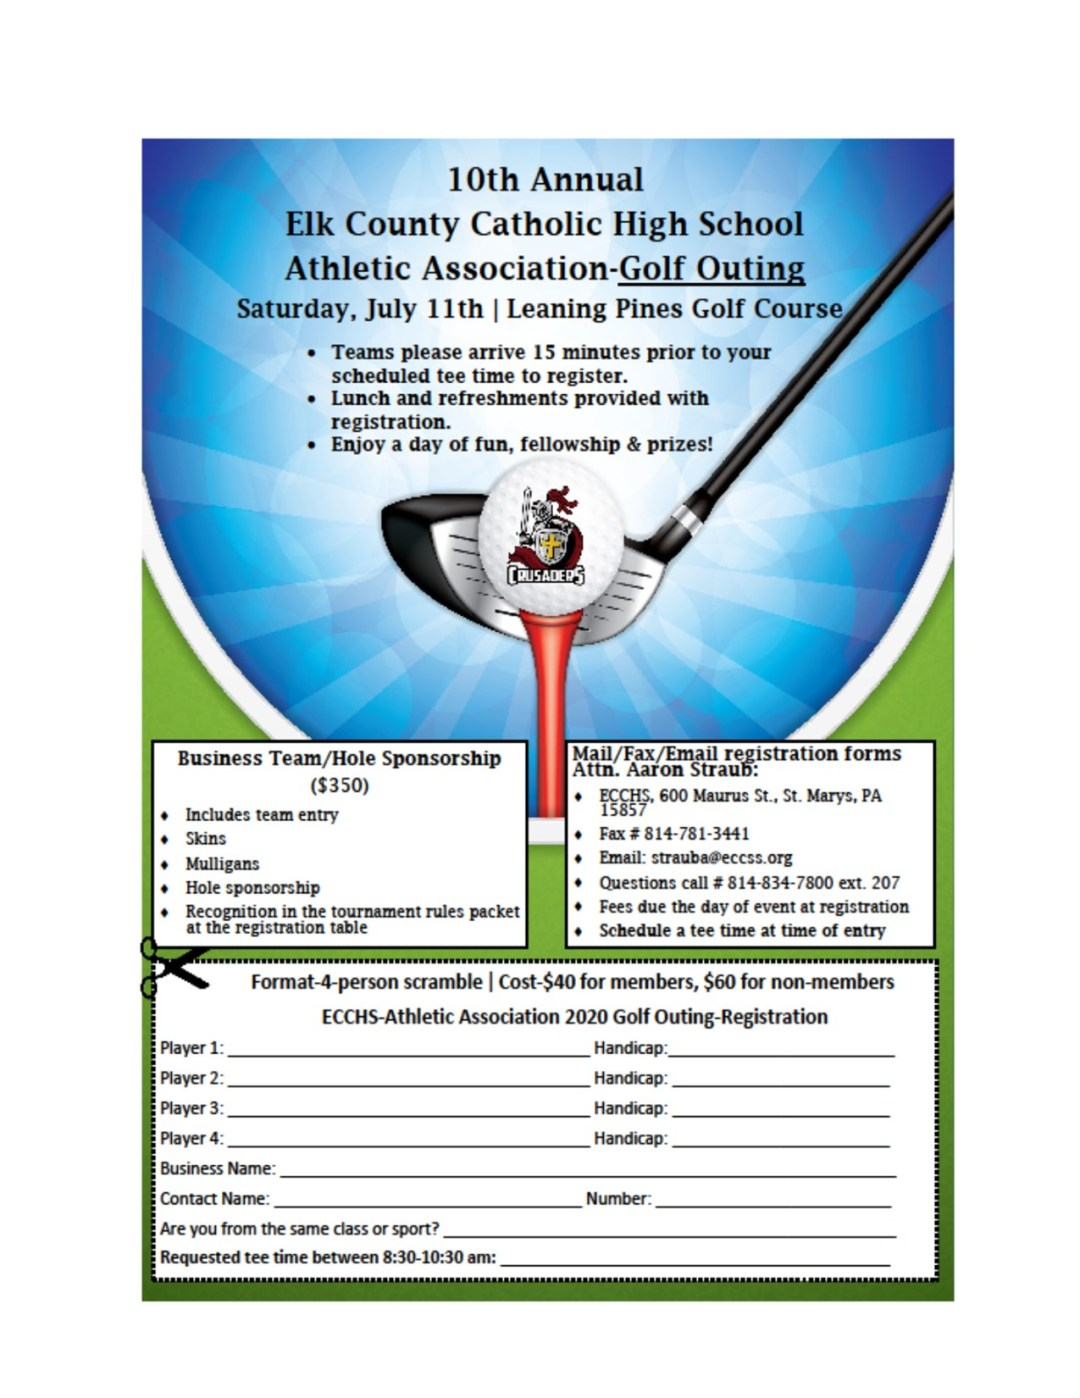 Accepting Golf Outing Registrations